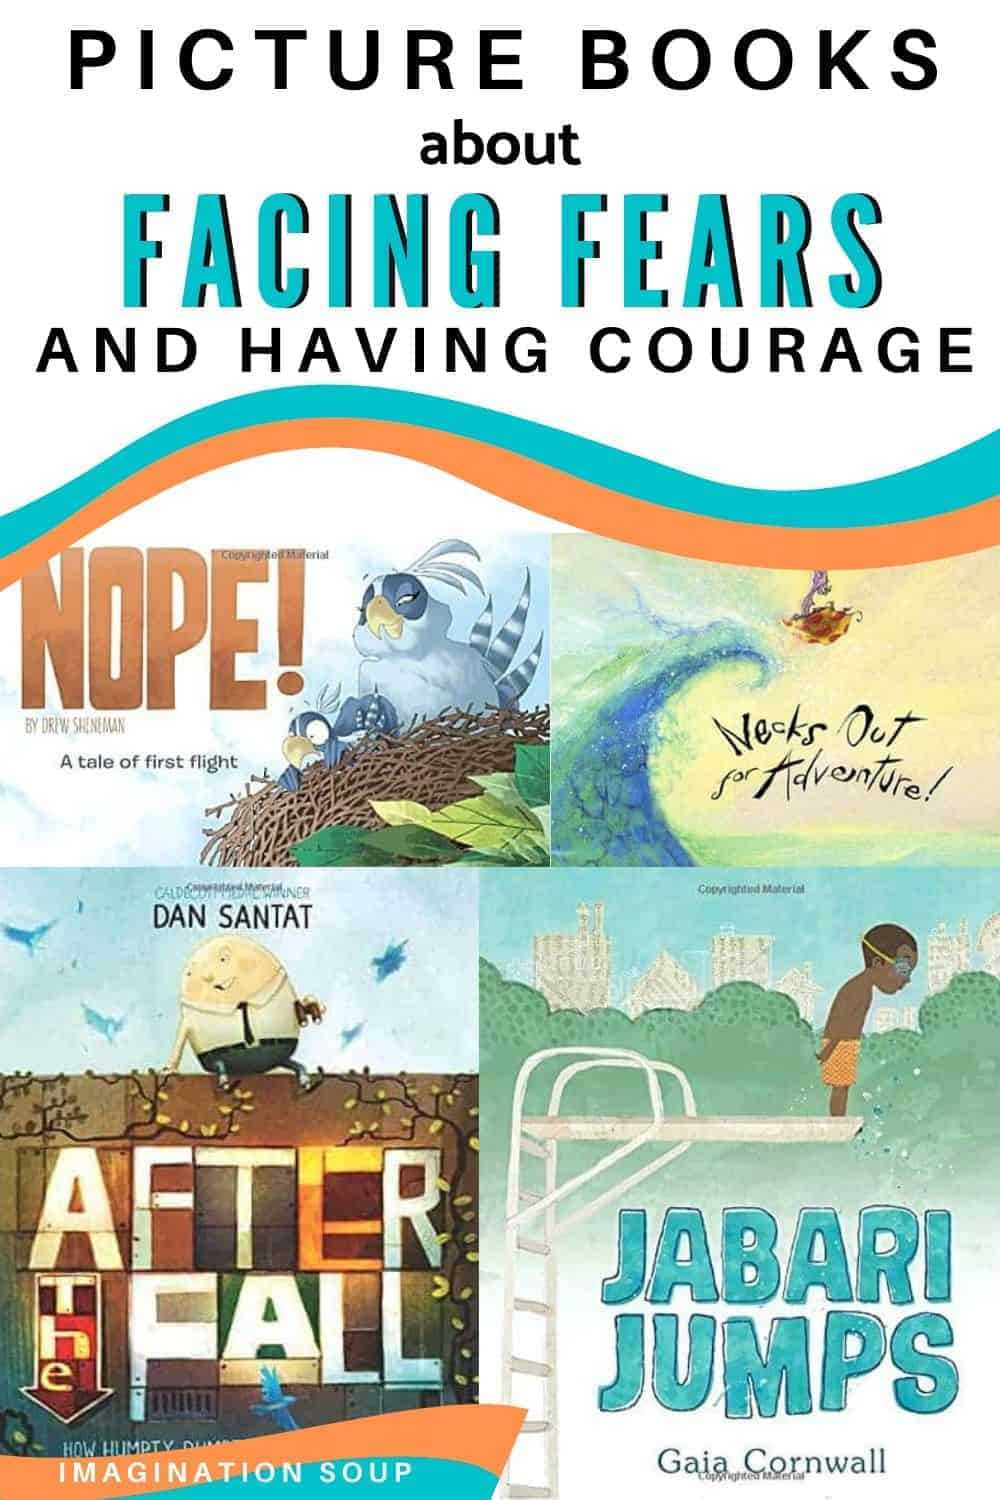 the best picture books about facing fears and having courage